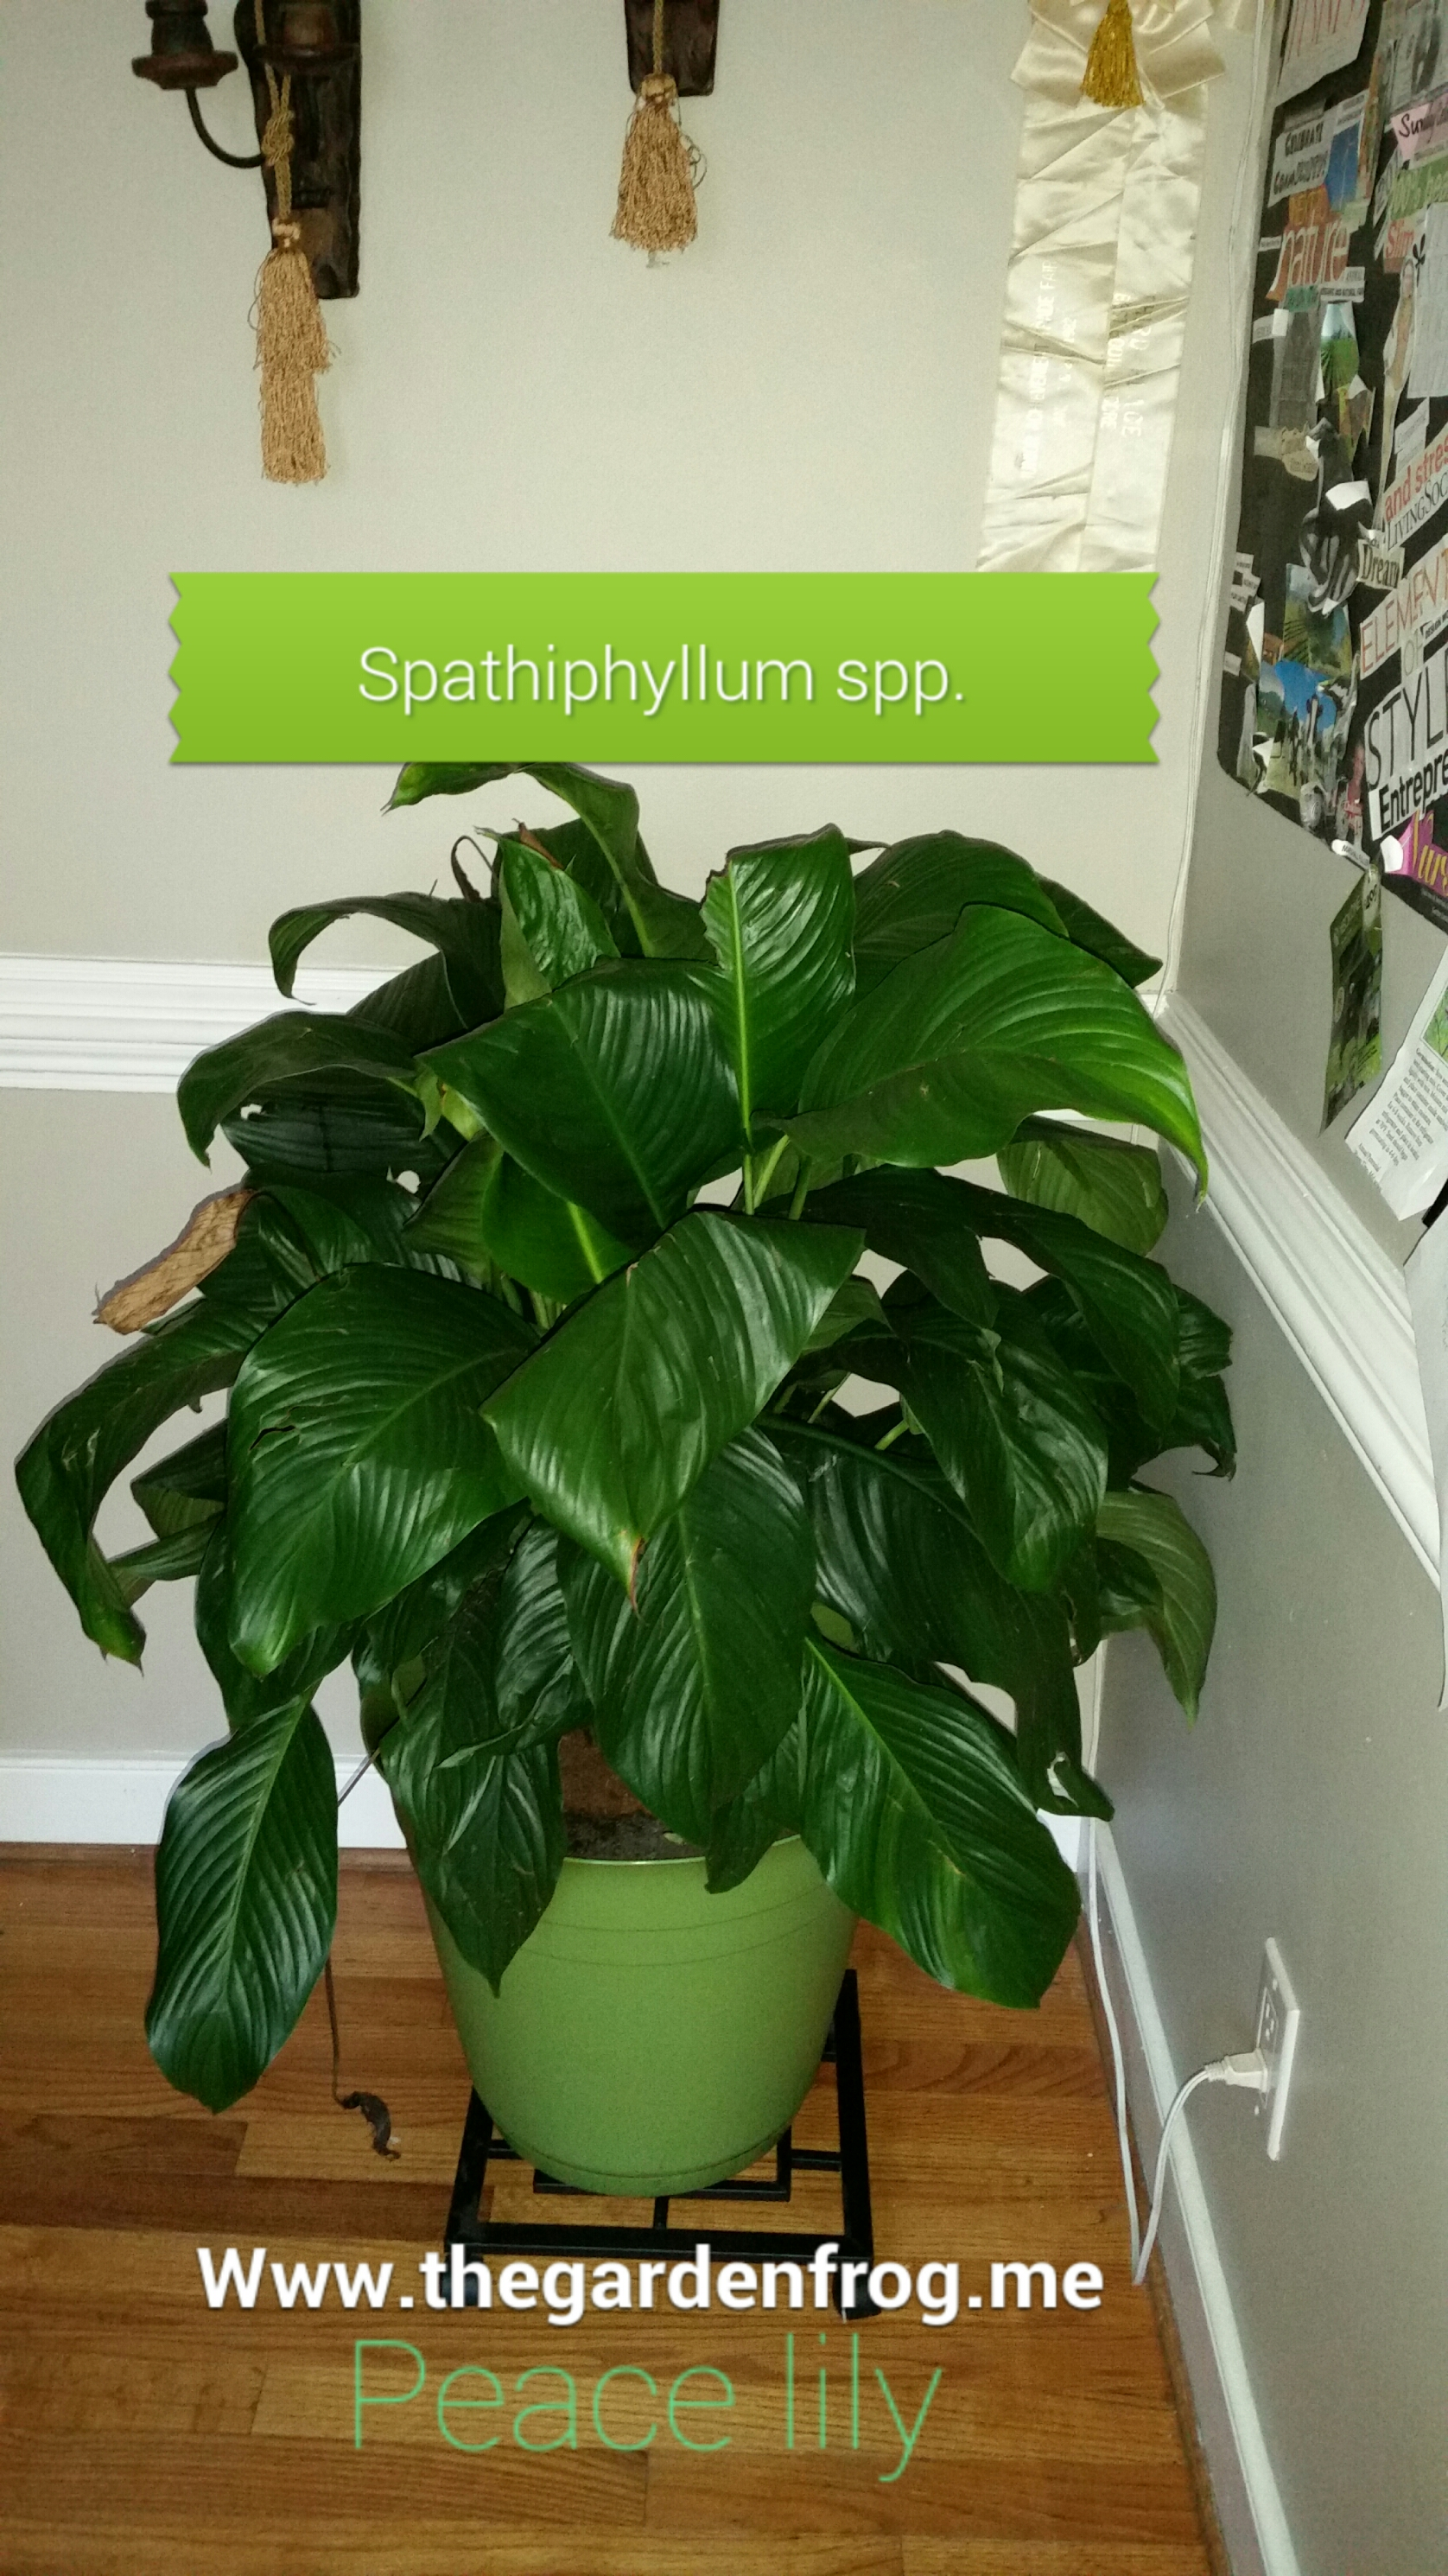 A Great Choice For A House Plant The Peace Lily